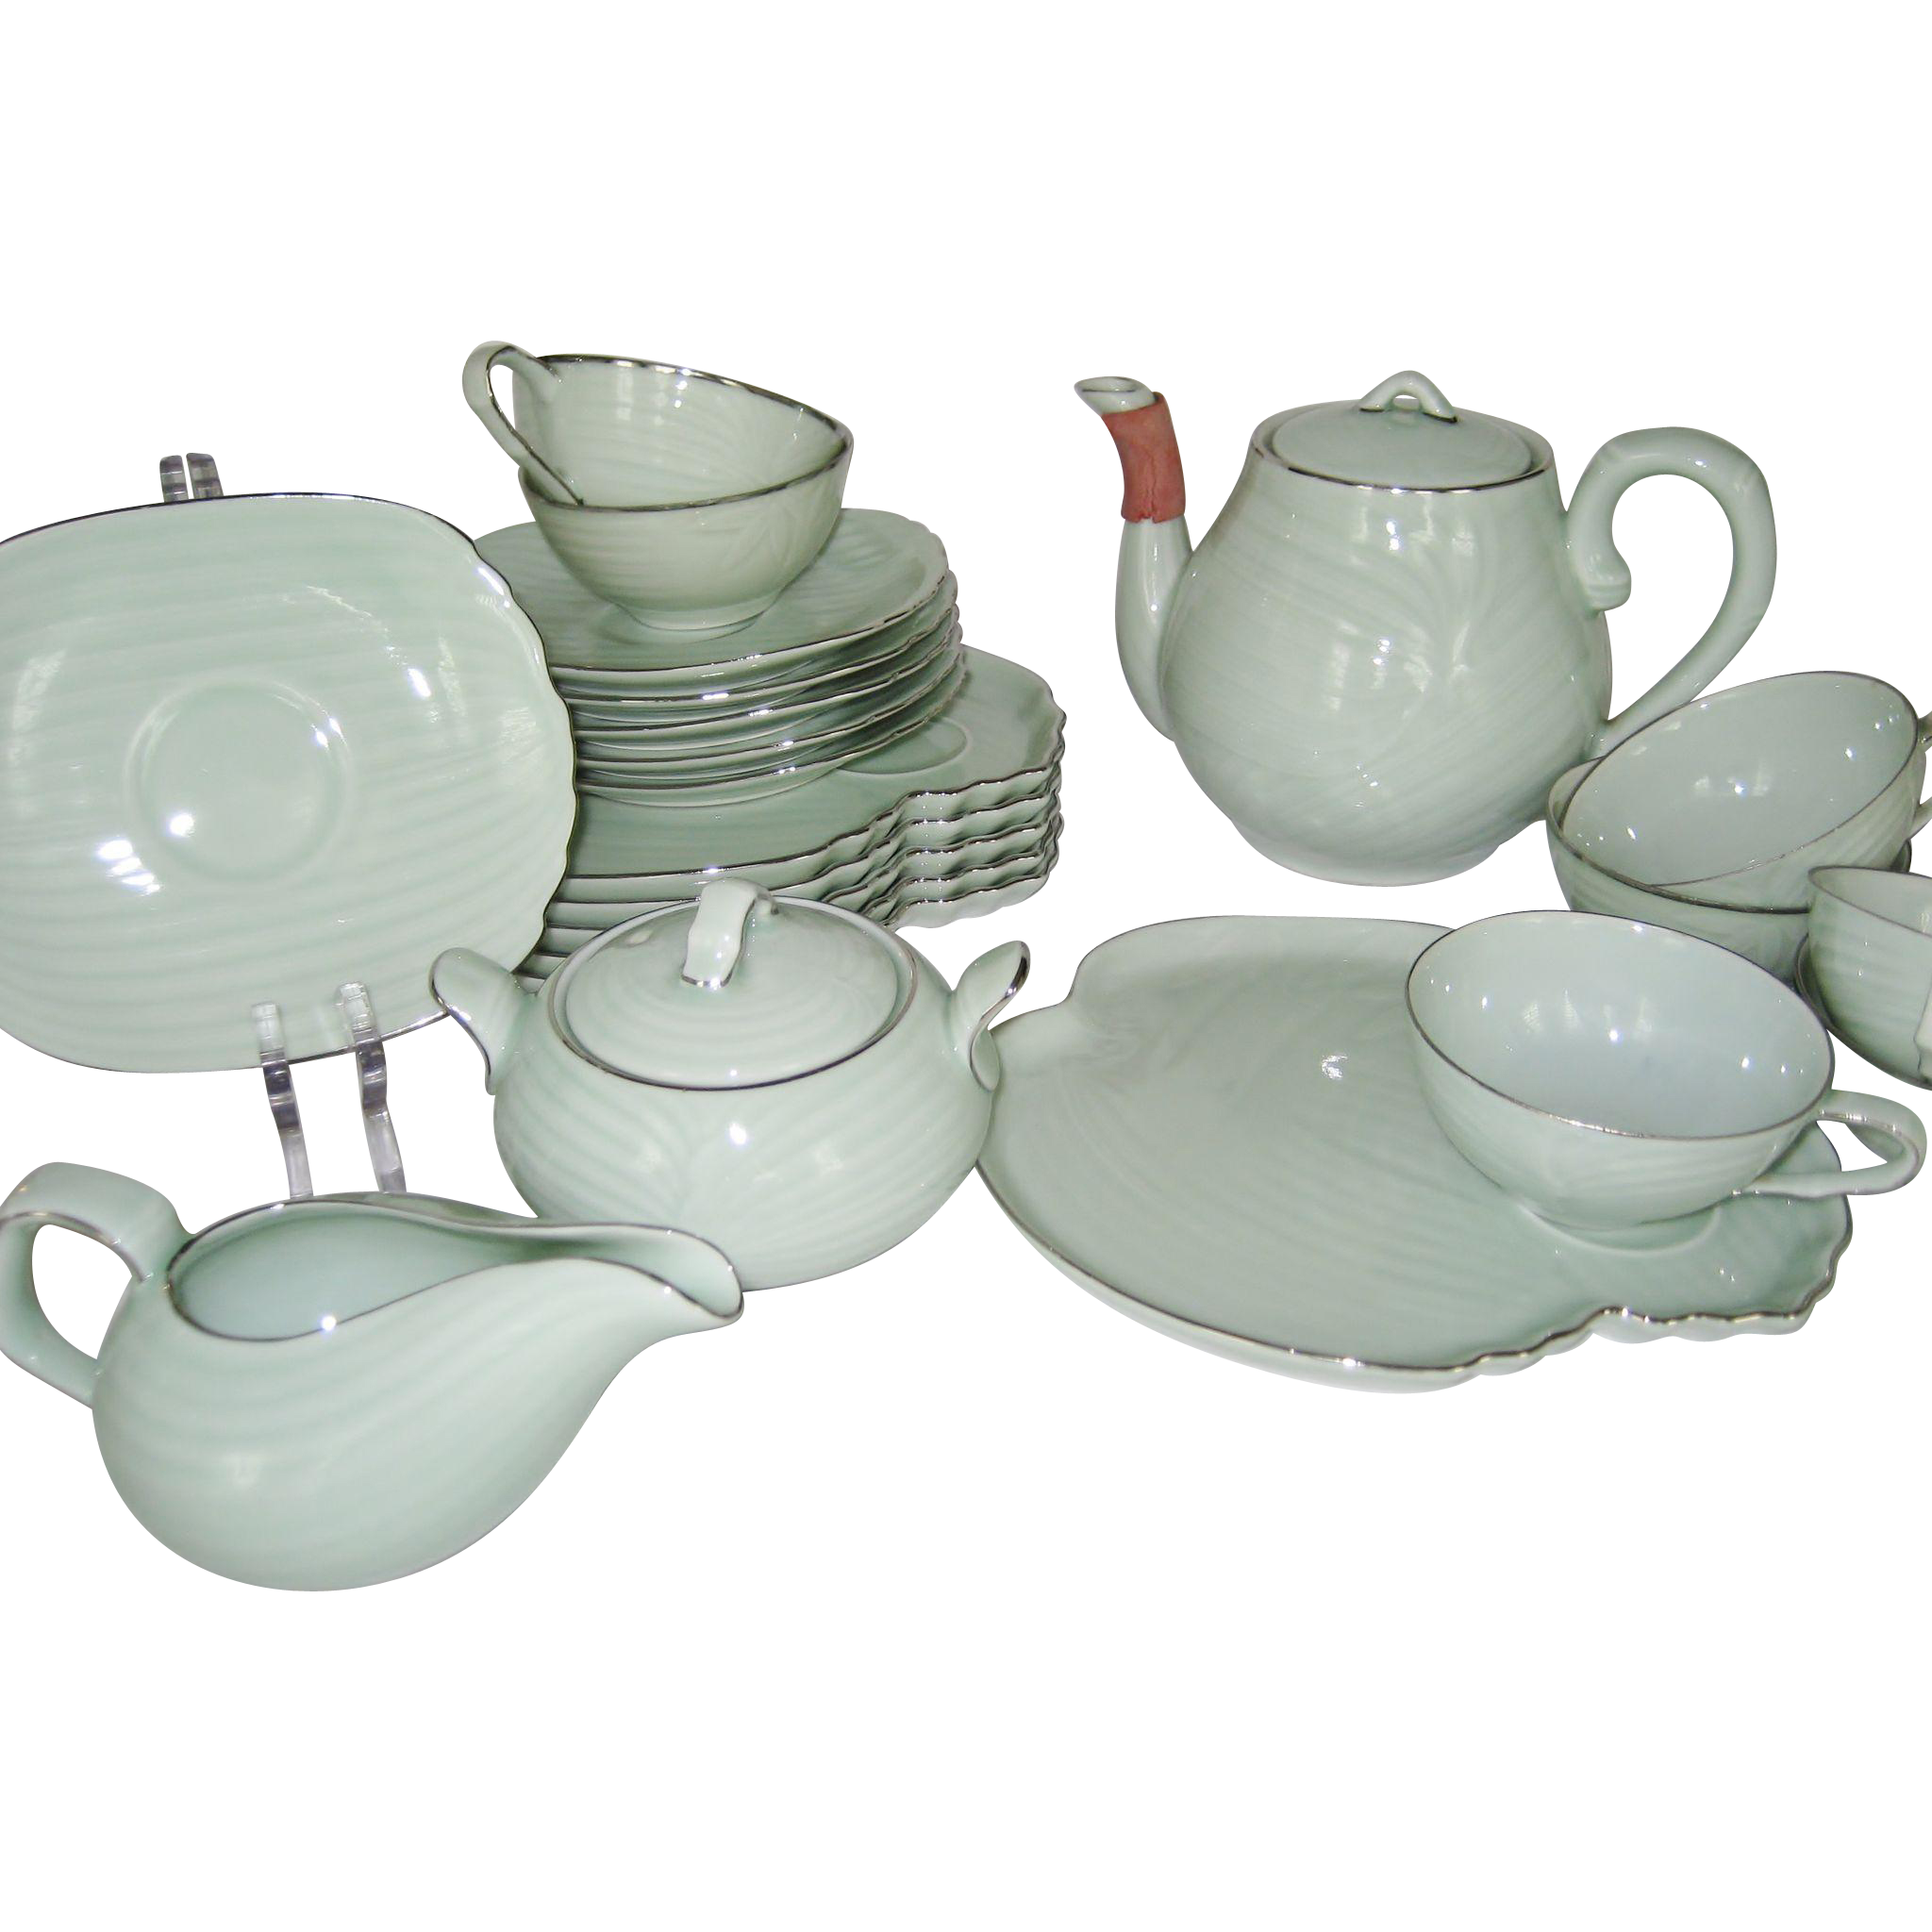 Seyei China Snack or Tea Set